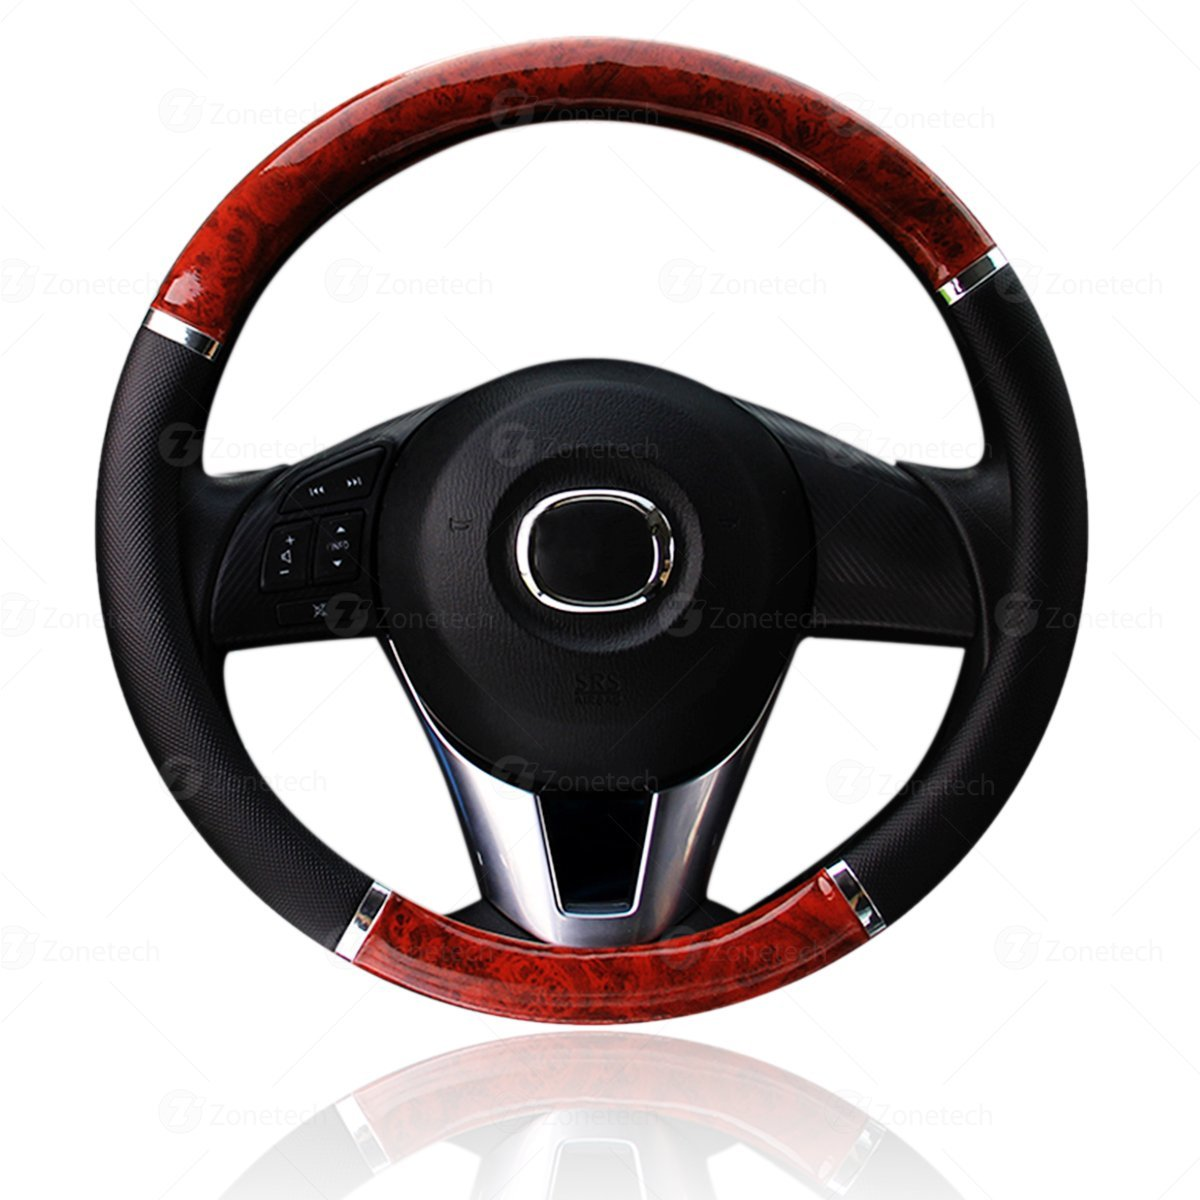 Zone Tech Black and Wood Style Steering Wheel Cover -  Classic Black with Wood Grain Style Cover Perfect for all Standard Size Auto Steering Wheel